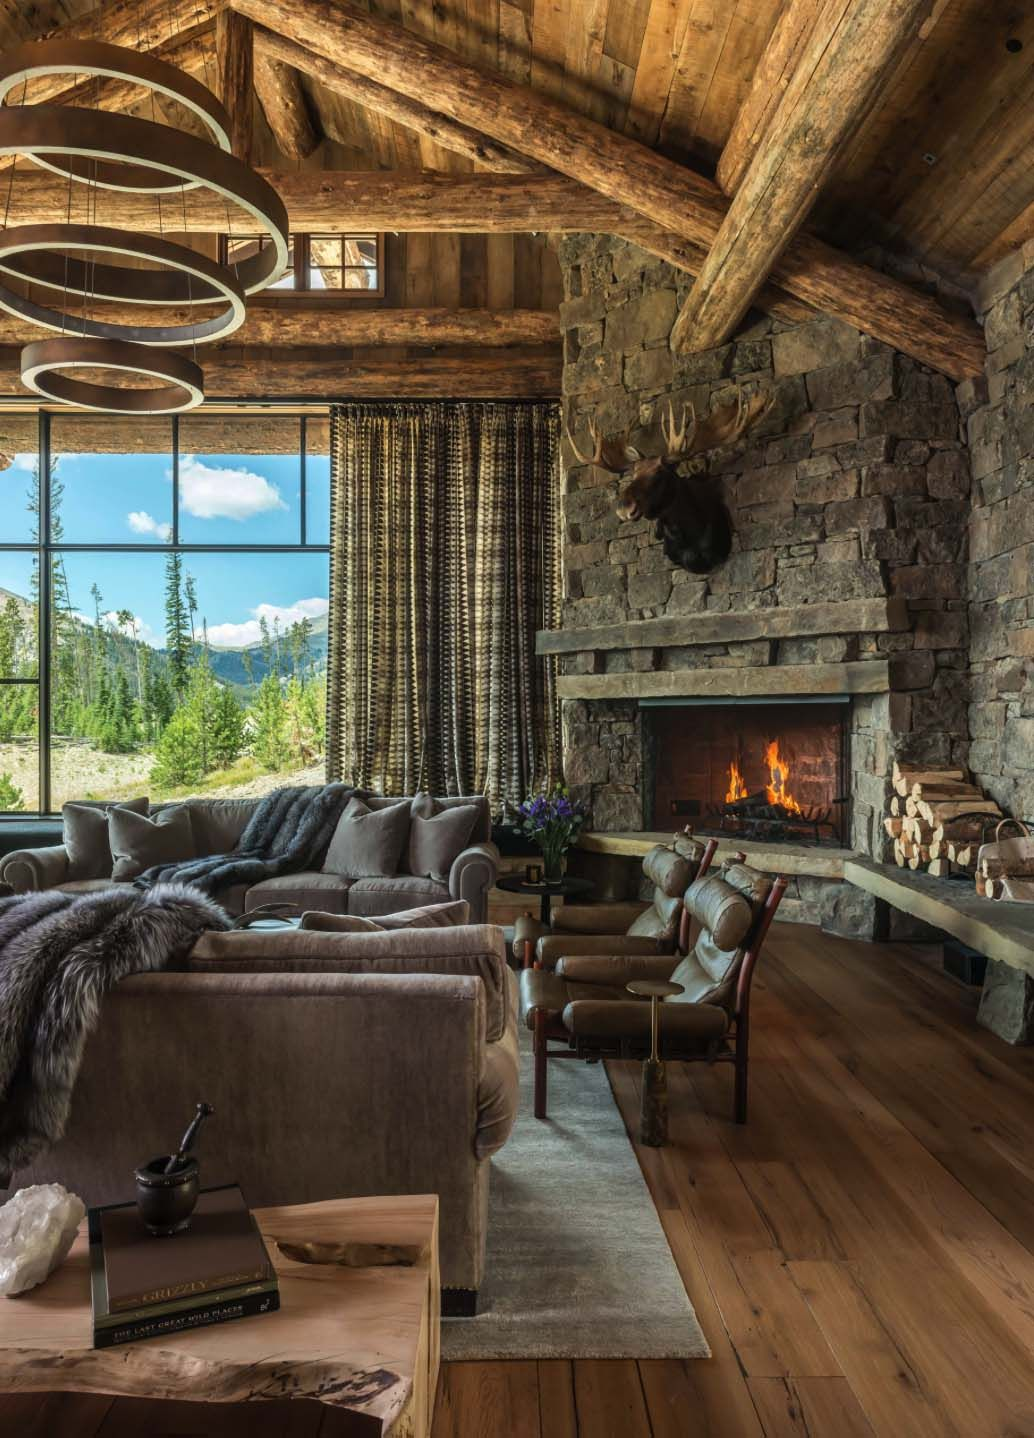 This stunning rustic chic mountain home is